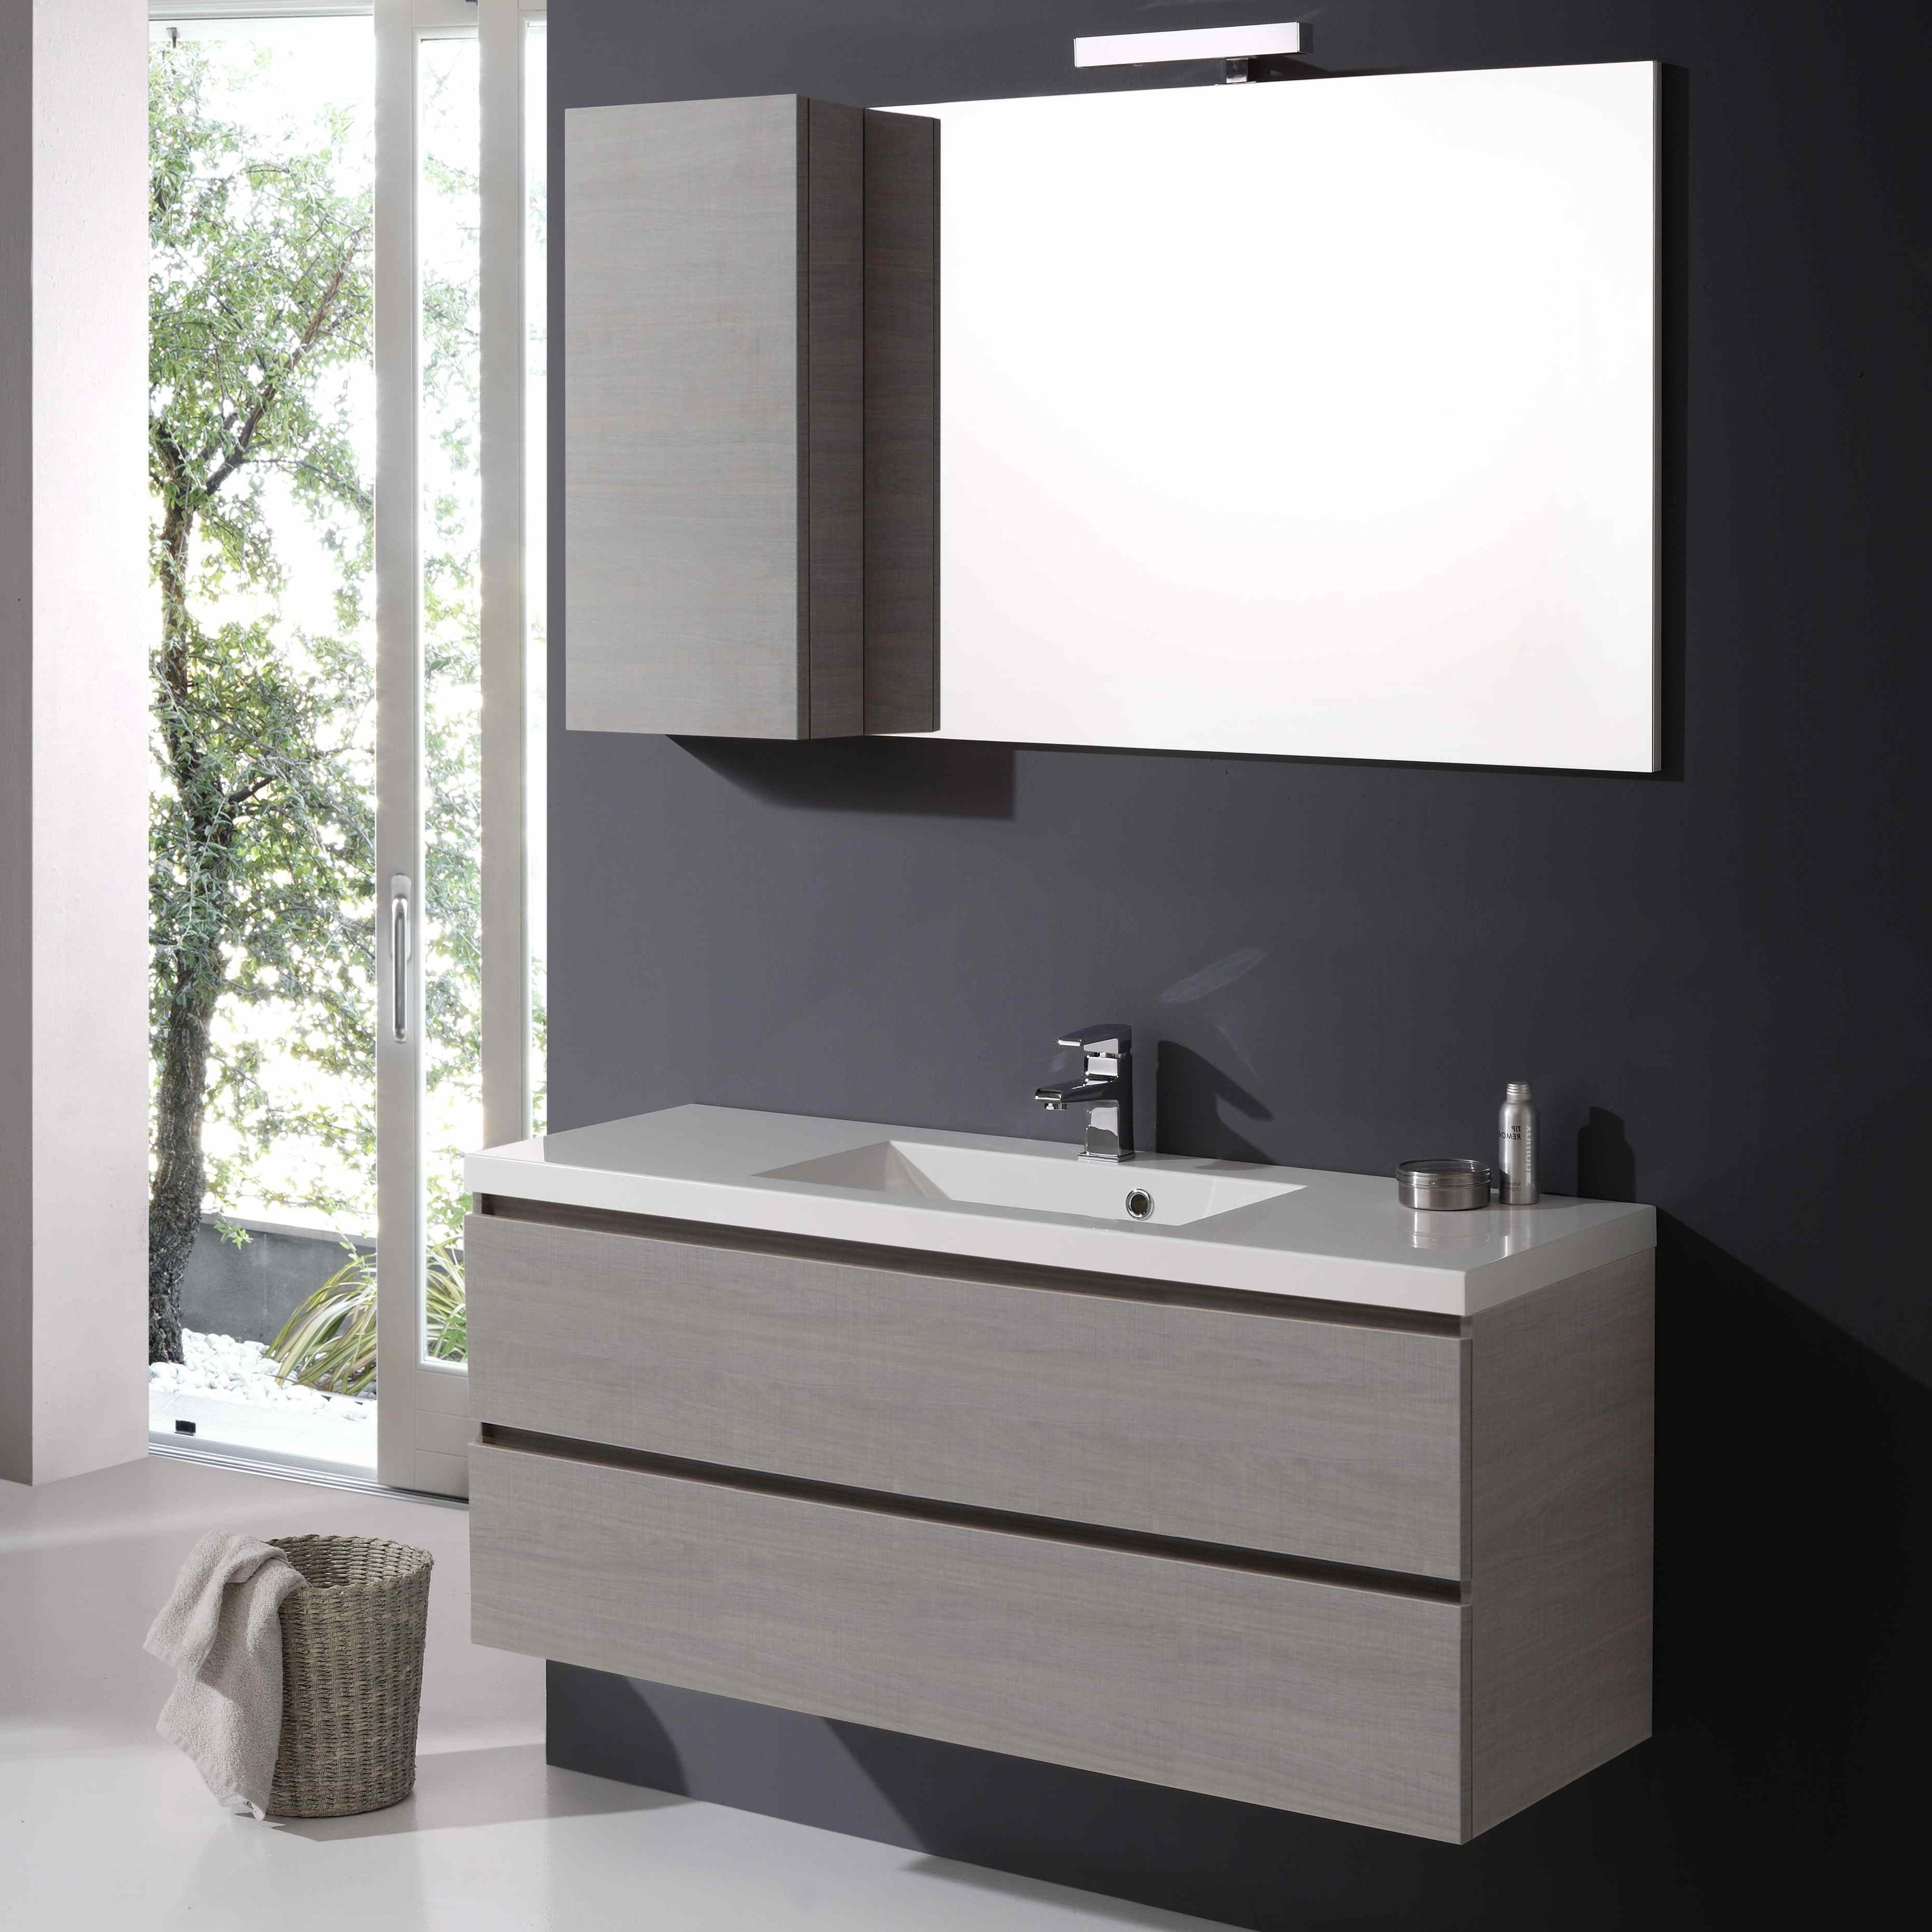 Pin On Bagno